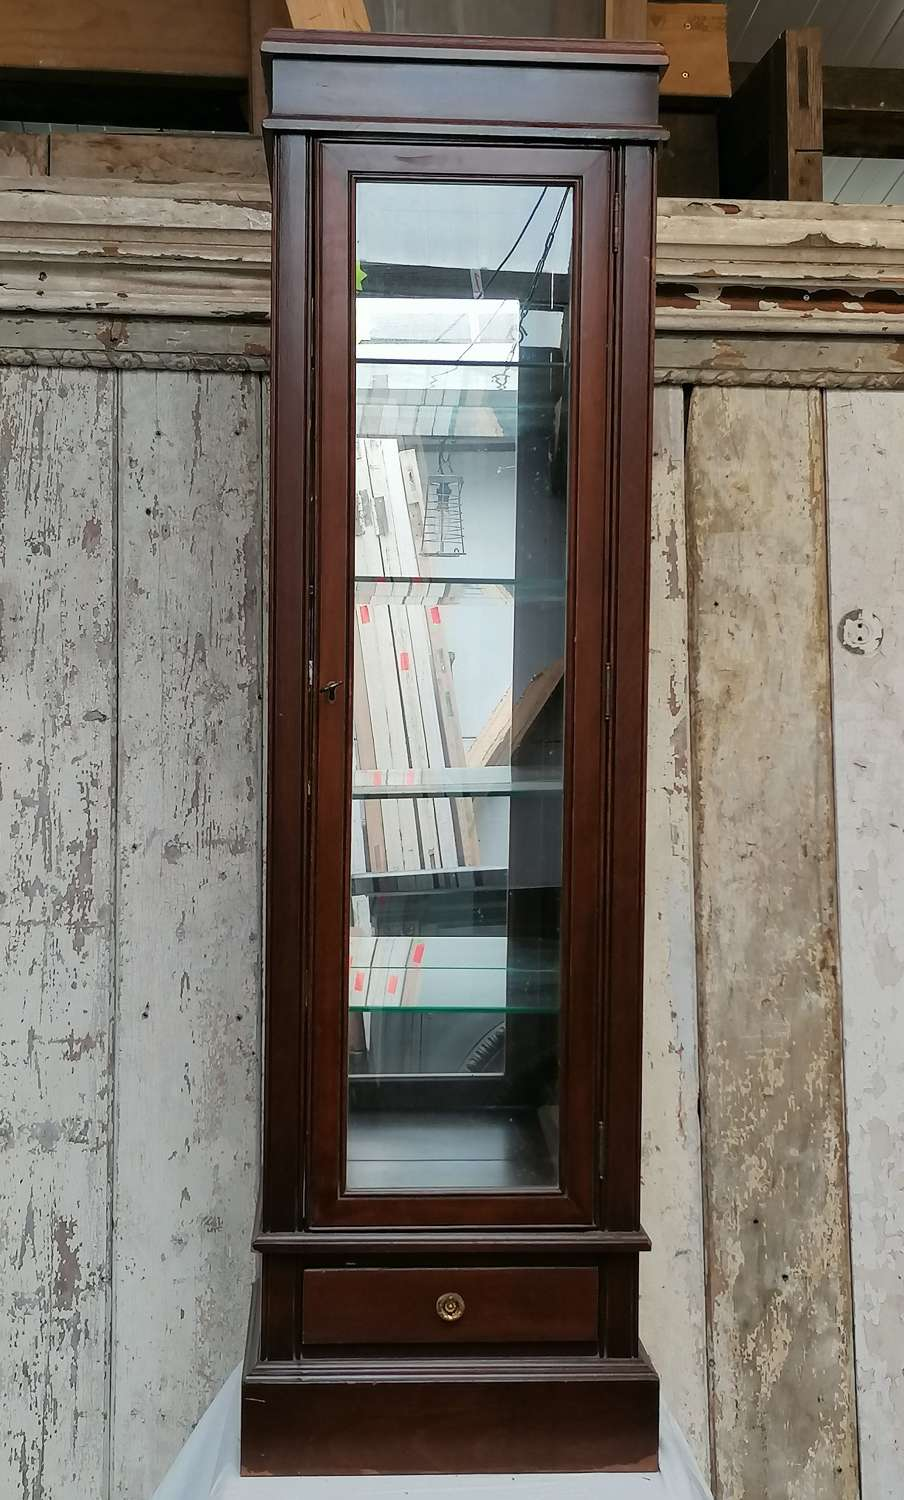 M1419 A BEAUTIFUL VINTAGE RECLAIMED WOOD AND GLASS DISPLAY CABINET